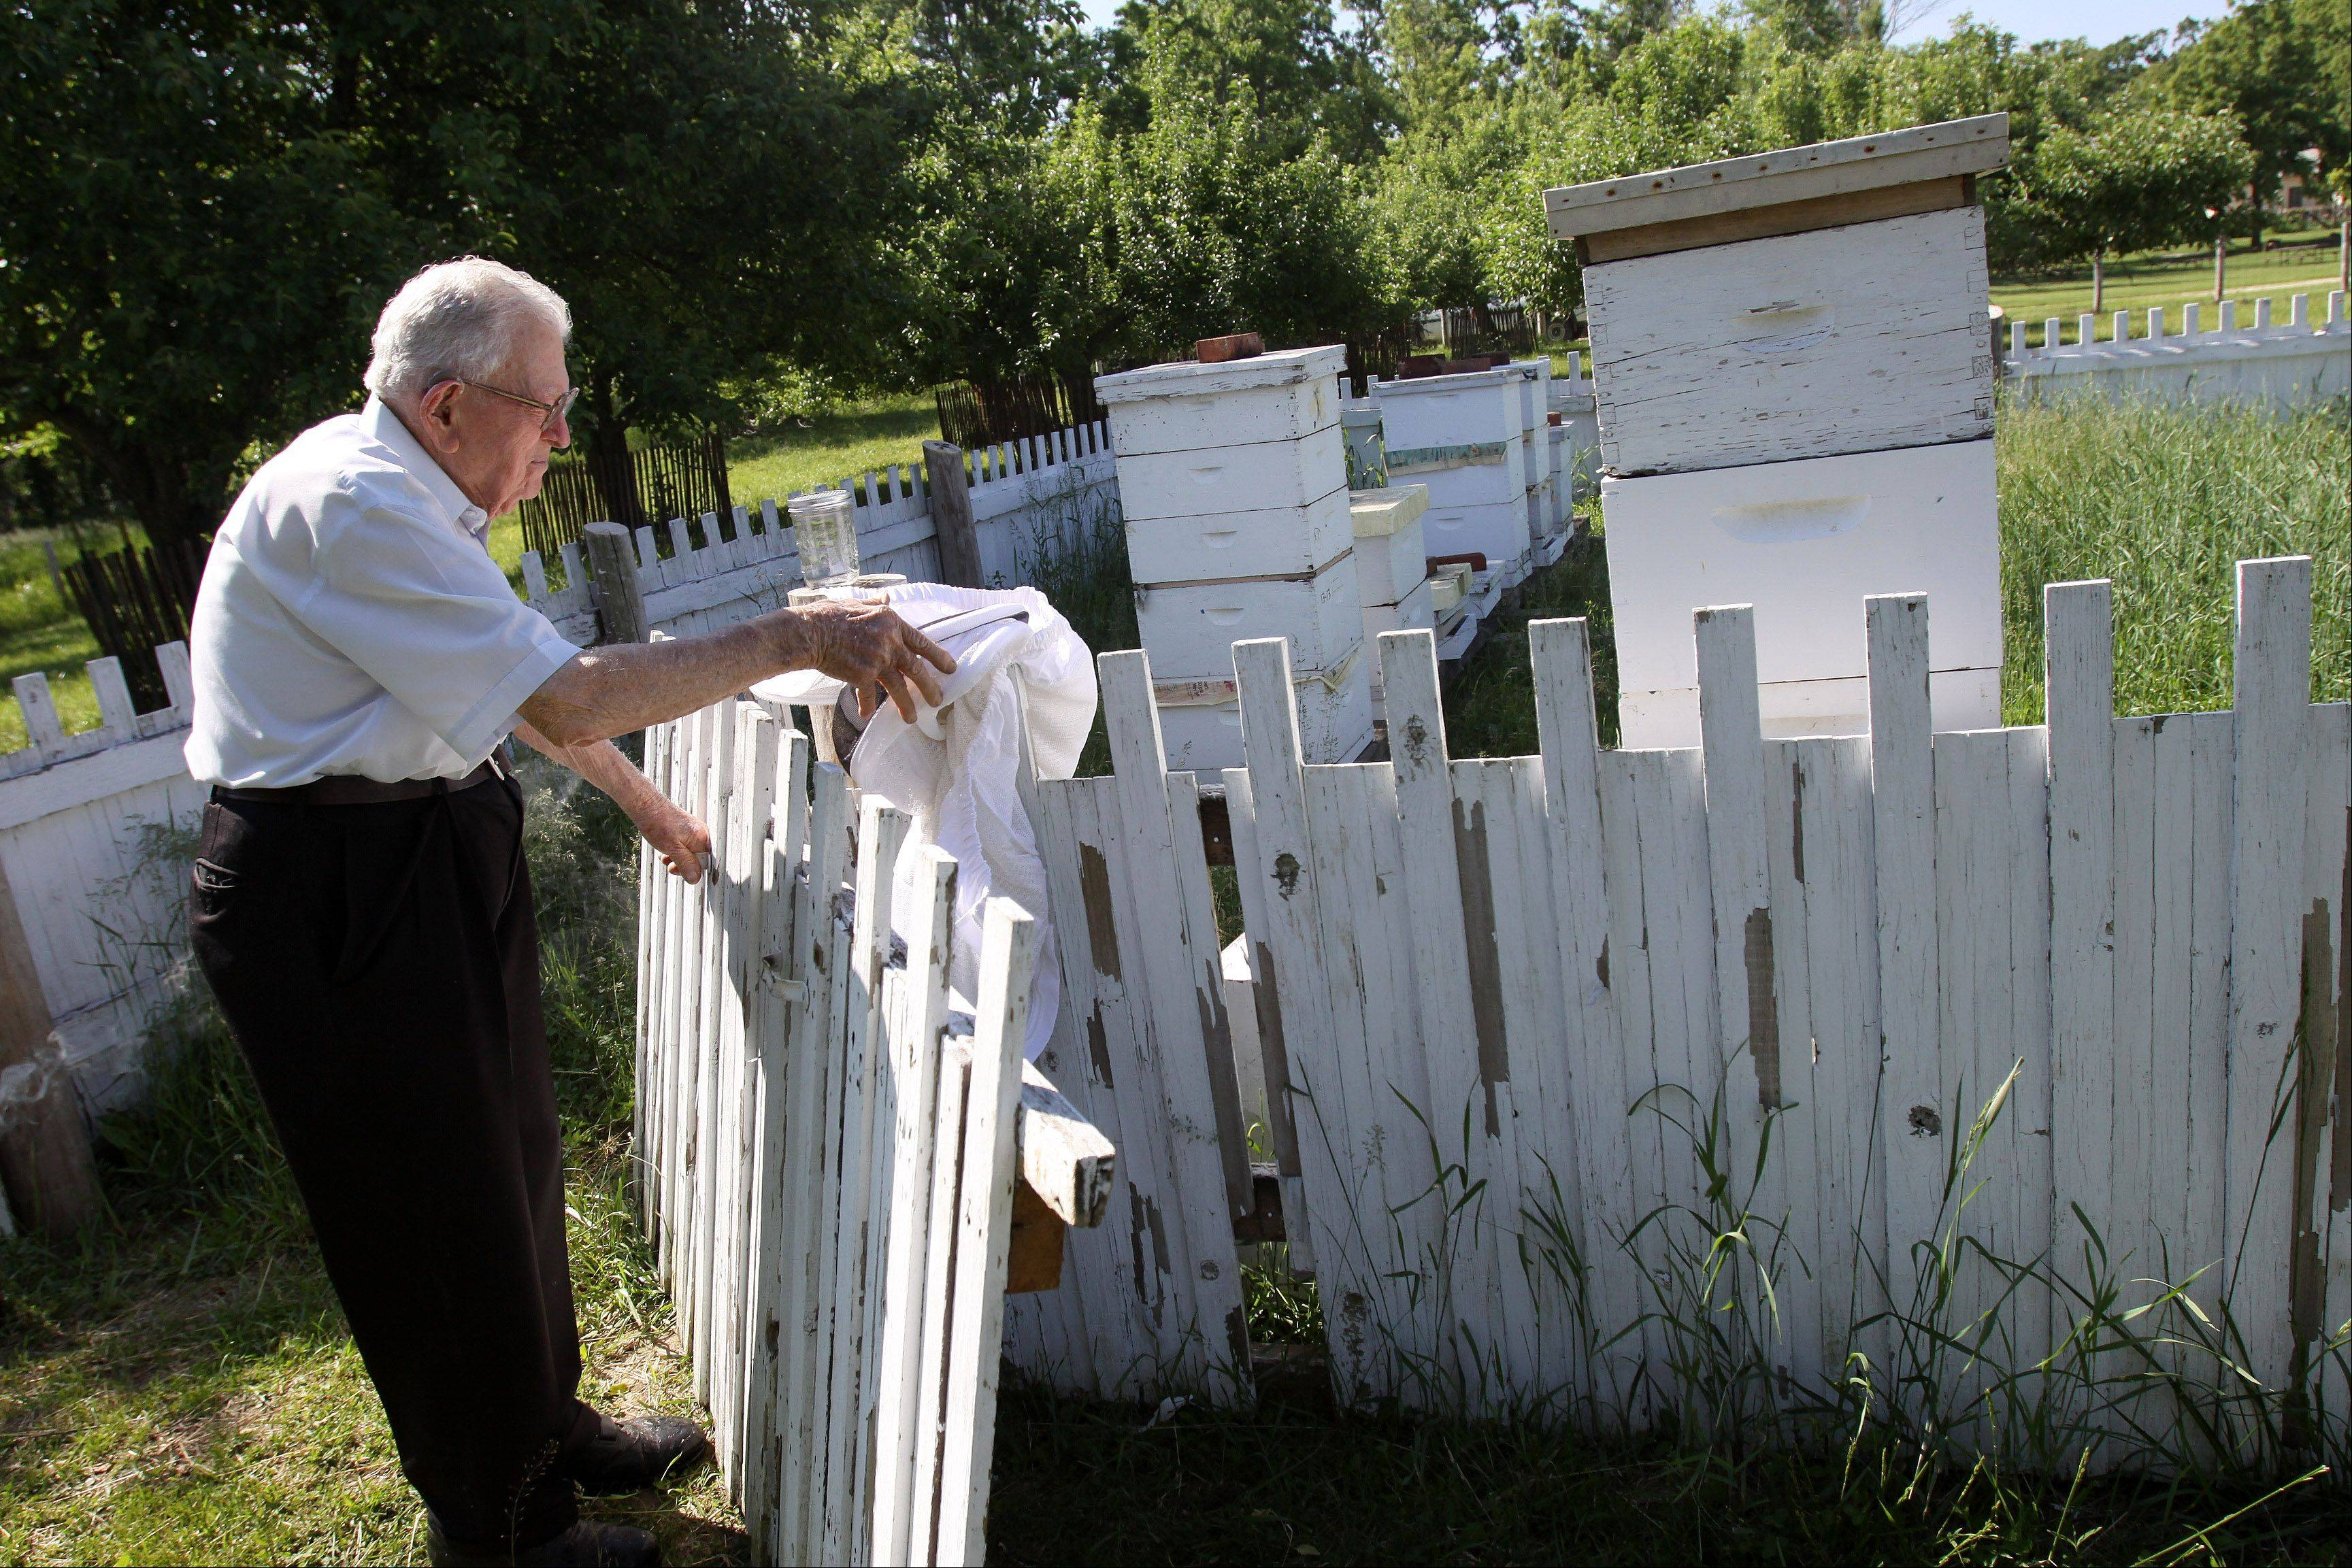 DuBose gets ready to tend to the bees at Kline Creek Farm in Winfield.